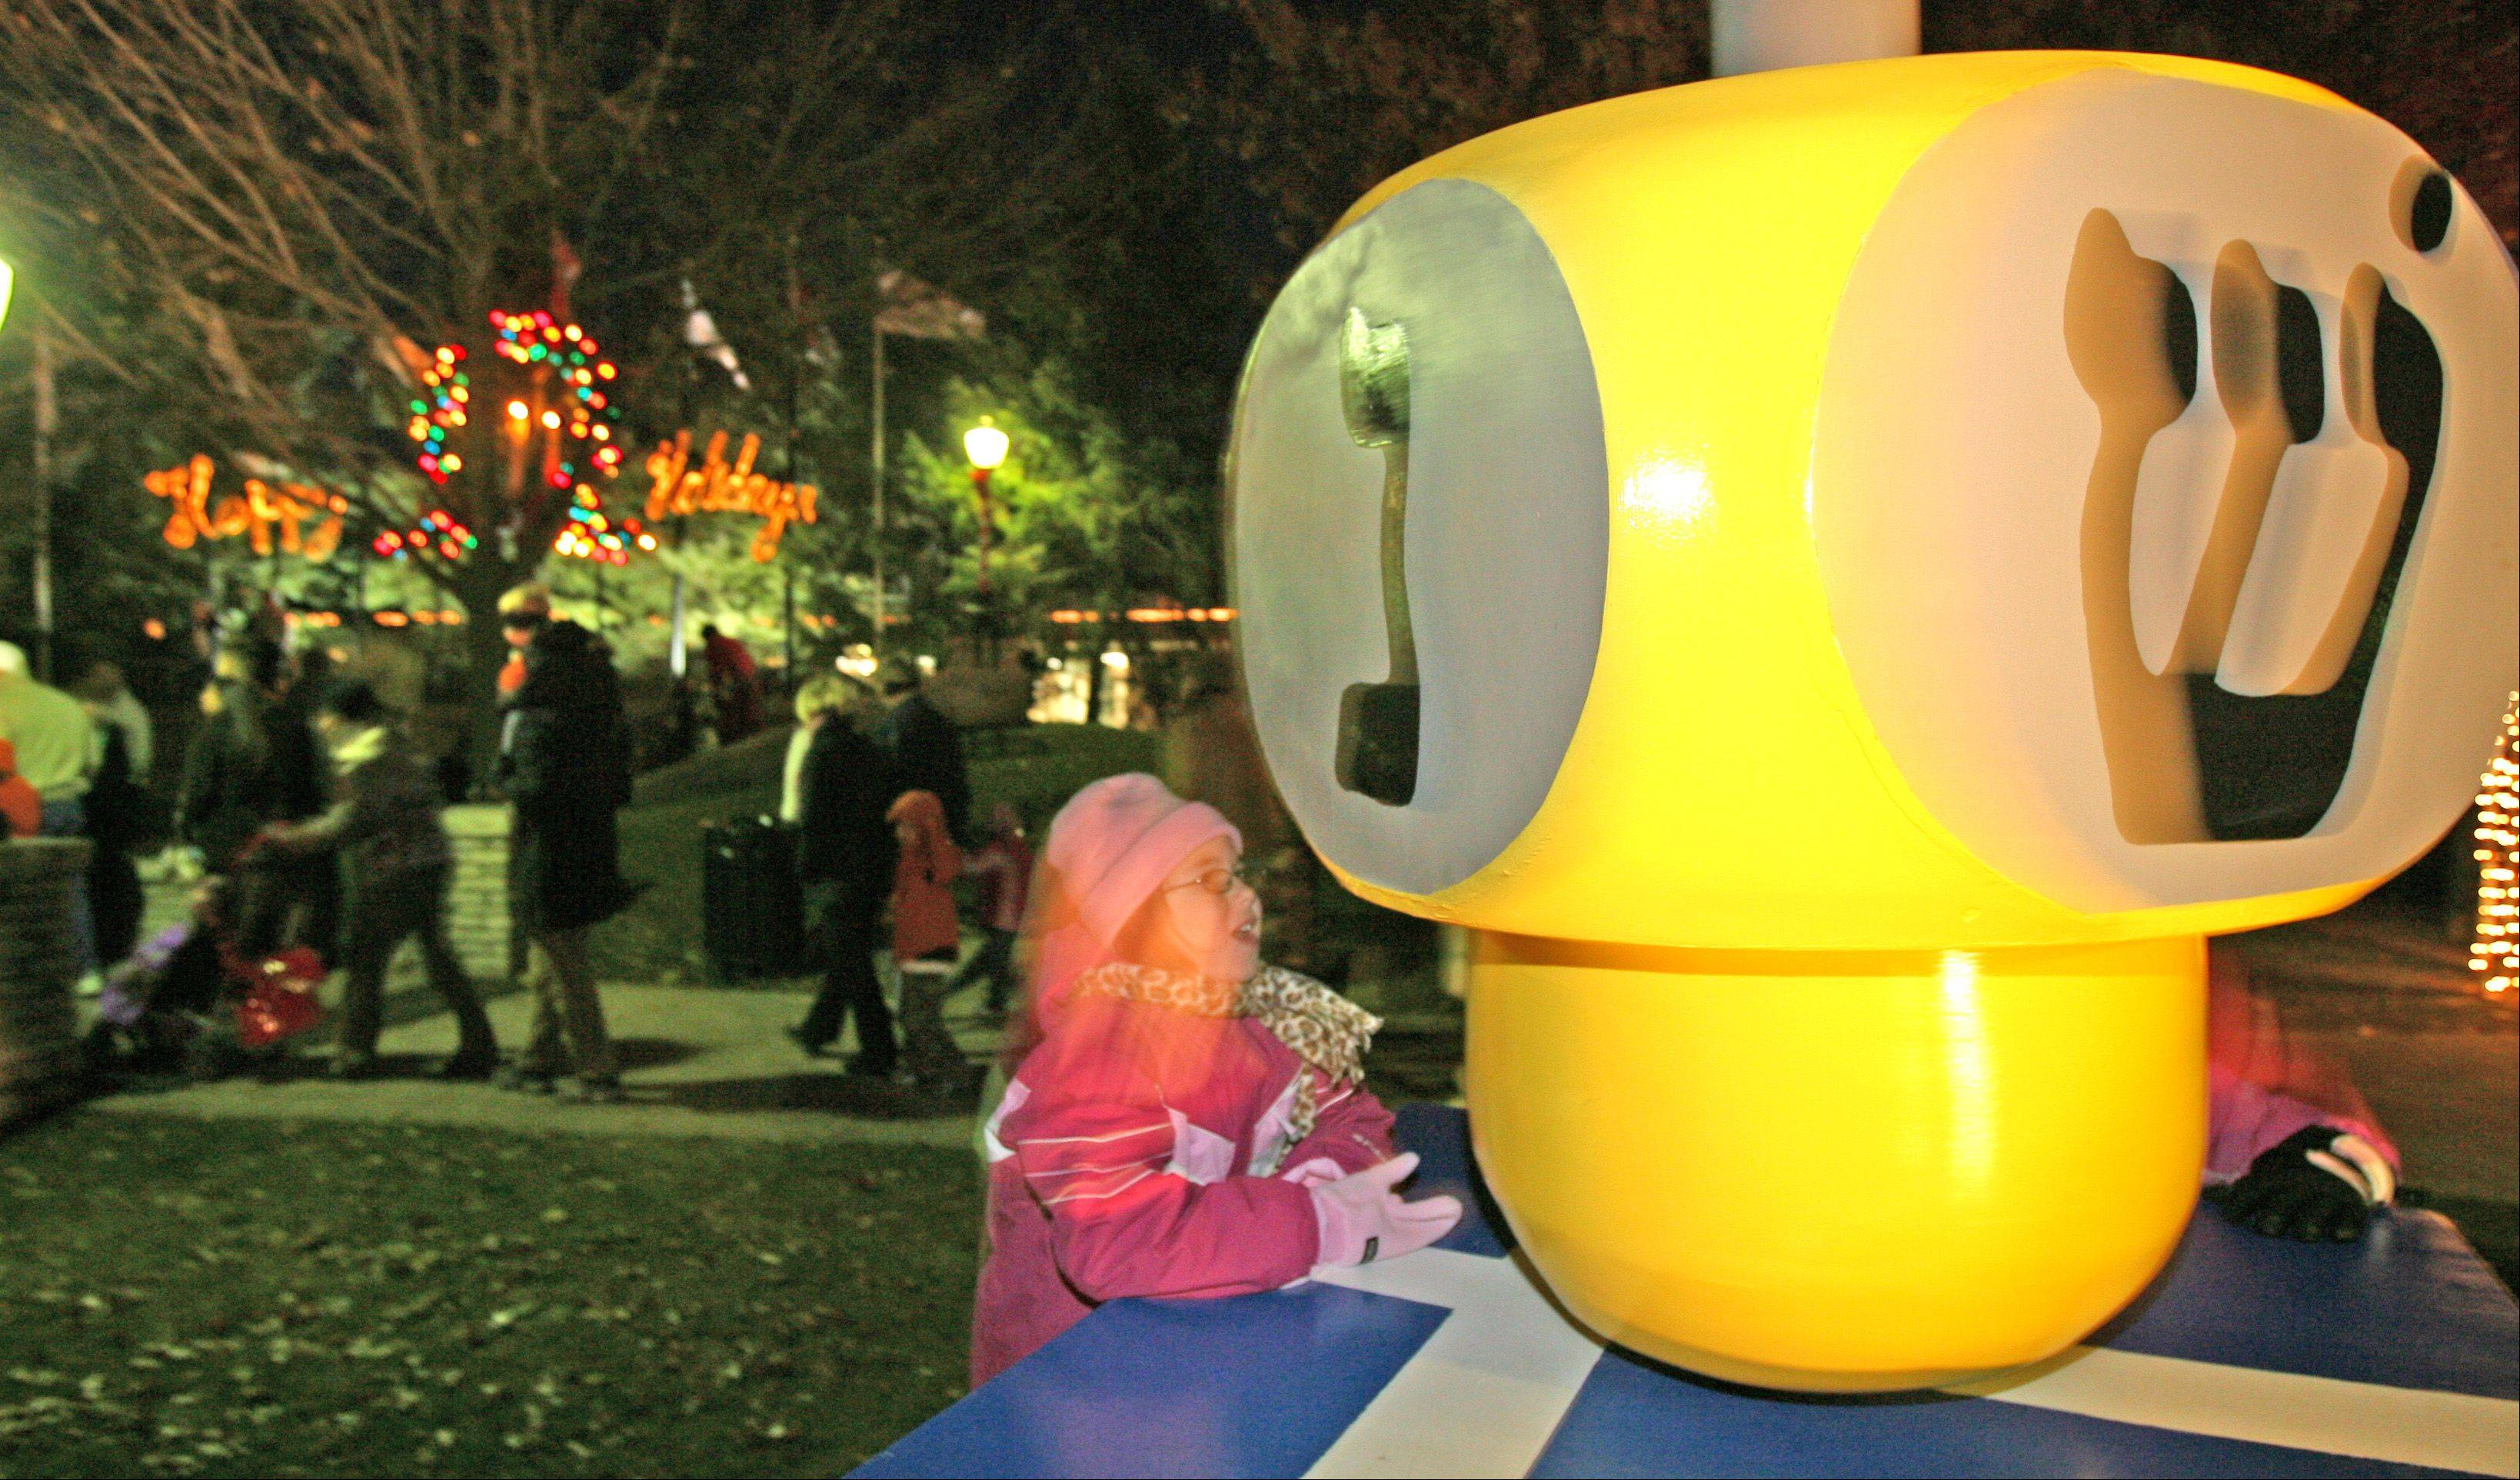 A little girl kisses a dreidel after the lighting ceremony in 2007.